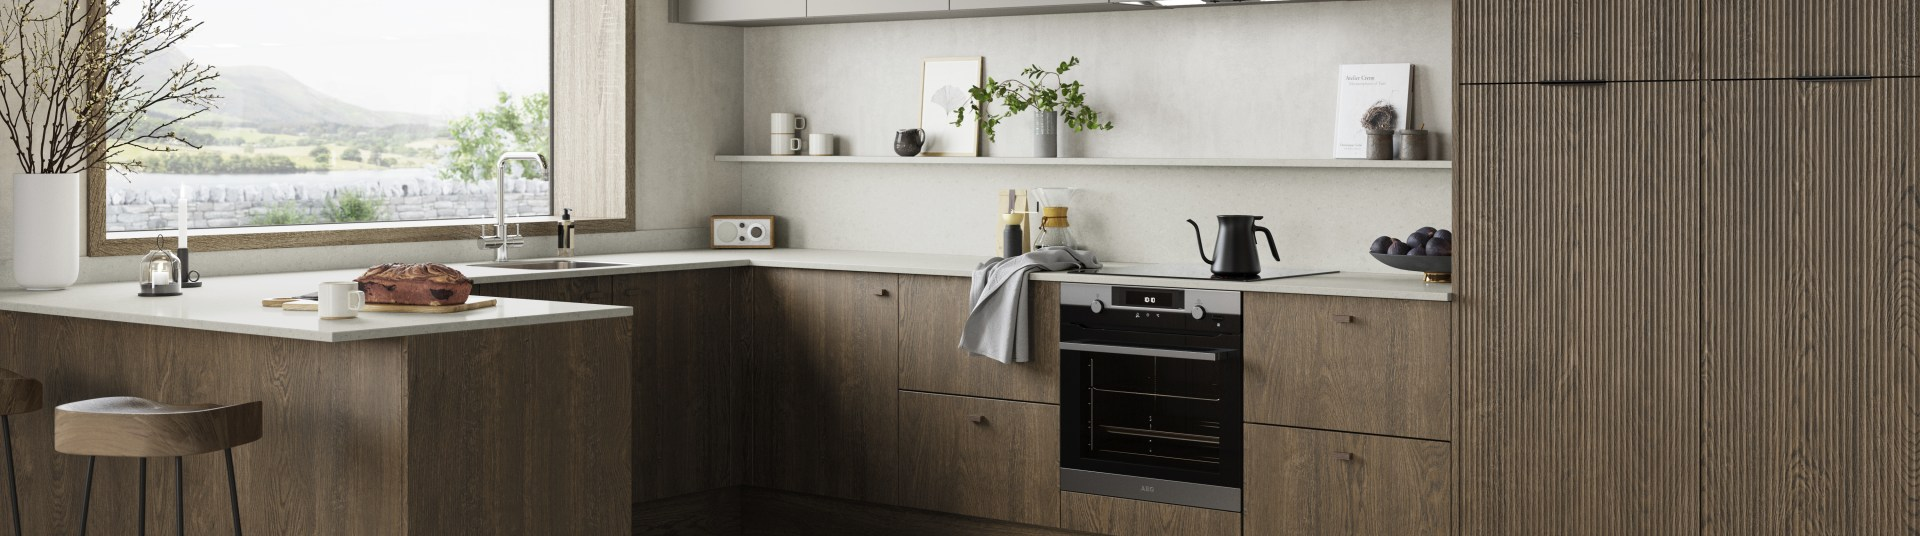 Magnet Kitchens 2021 Nordic Nature range with Fluted oak doors and Integra Hoxton Pebble cabinets with Dekton Aeri worktop. U-shaped kitchen with breakfast bar area.